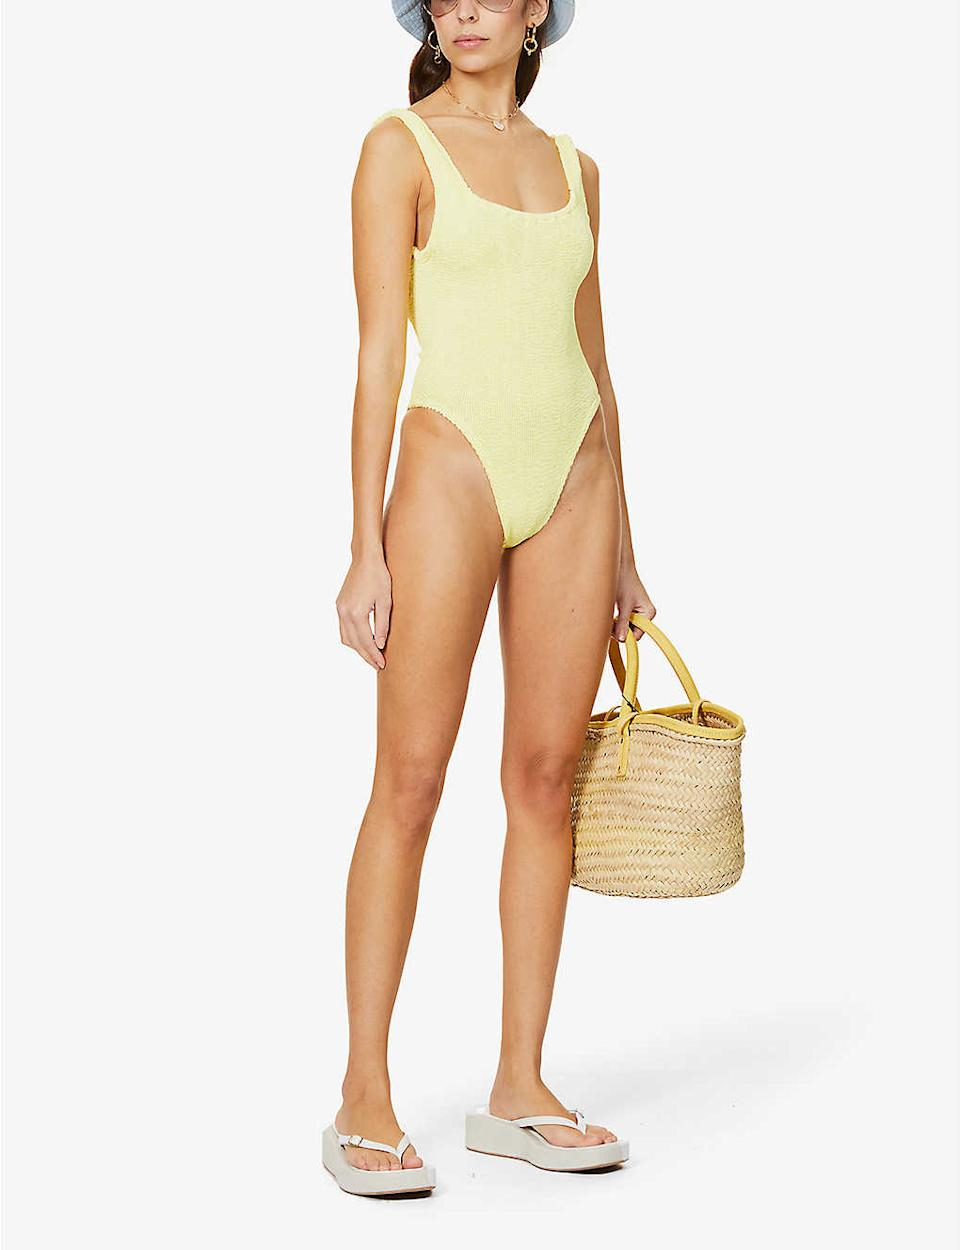 Hunza G Square Neck Metallic One Piece - Selfridges & Co.